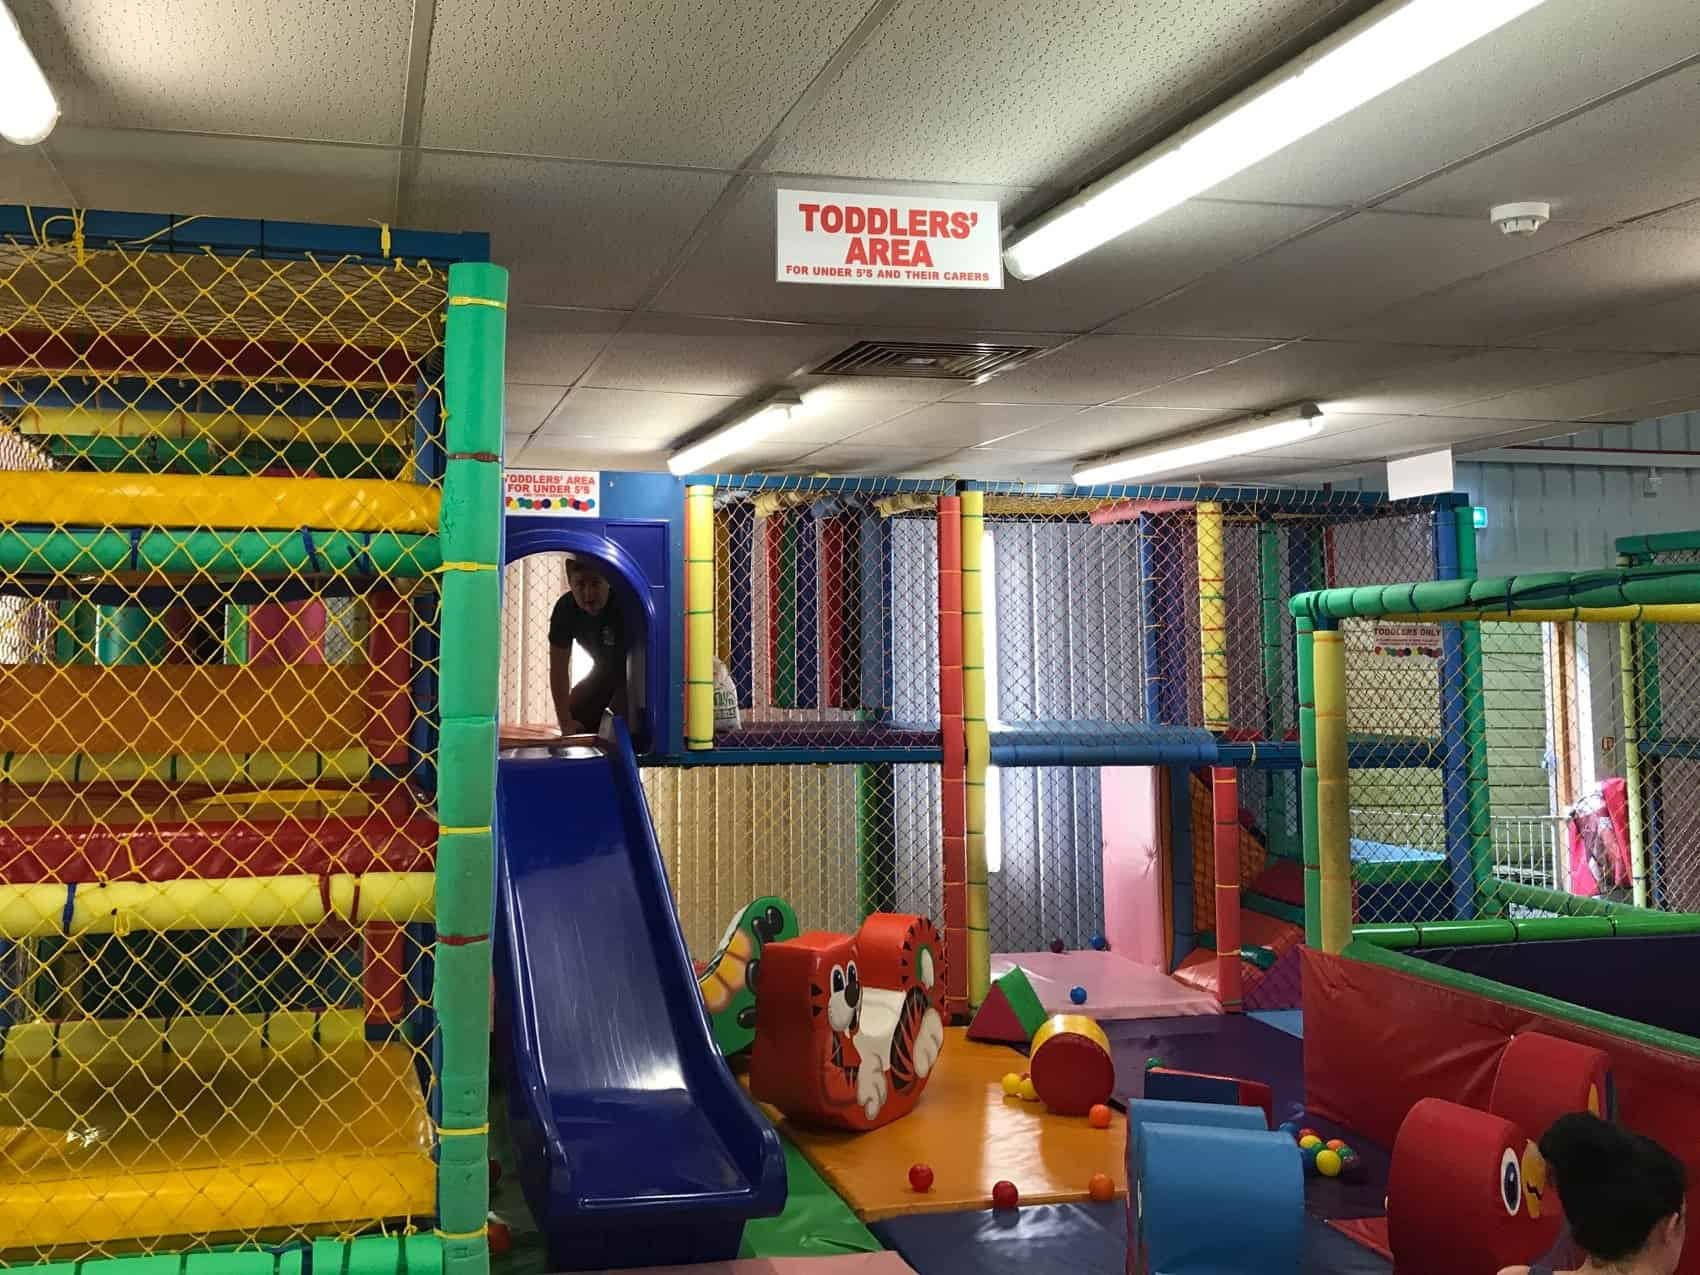 Toddlers' area of the Jungle Barn